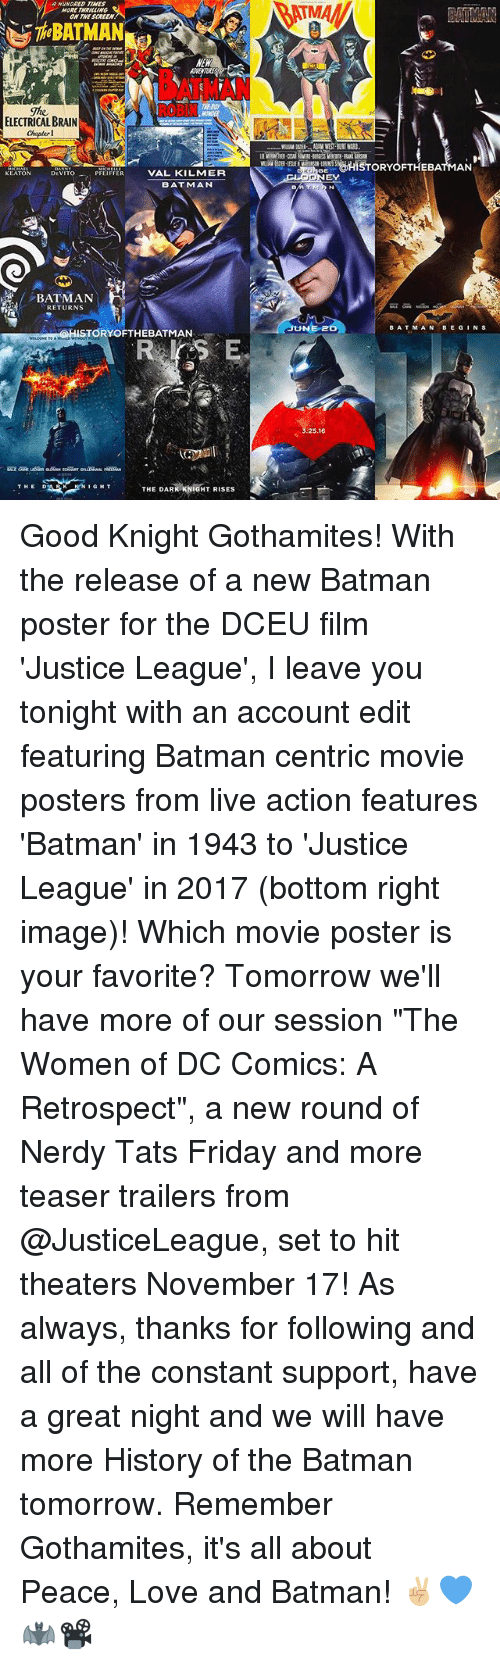 "Memes, 🤖, and The Batman: MORE  NEW  ELECTRICAL BRAIN  Chapter 1  DEVITO  PFEIFFER  VAL KILMER  KEATON  BATMAN  RETURNS  STORY OFTHEBATMAN  RK KNIGHT RISES  THE DAR  EAMAN  g@HISTORY OFTHEBAT  AN  ATM N  BAT MAN  BE G  NS  NEr  25,16 Good Knight Gothamites! With the release of a new Batman poster for the DCEU film 'Justice League', I leave you tonight with an account edit featuring Batman centric movie posters from live action features 'Batman' in 1943 to 'Justice League' in 2017 (bottom right image)! Which movie poster is your favorite? Tomorrow we'll have more of our session ""The Women of DC Comics: A Retrospect"", a new round of Nerdy Tats Friday and more teaser trailers from @JusticeLeague, set to hit theaters November 17! As always, thanks for following and all of the constant support, have a great night and we will have more History of the Batman tomorrow. Remember Gothamites, it's all about Peace, Love and Batman! ✌🏼💙🦇📽"